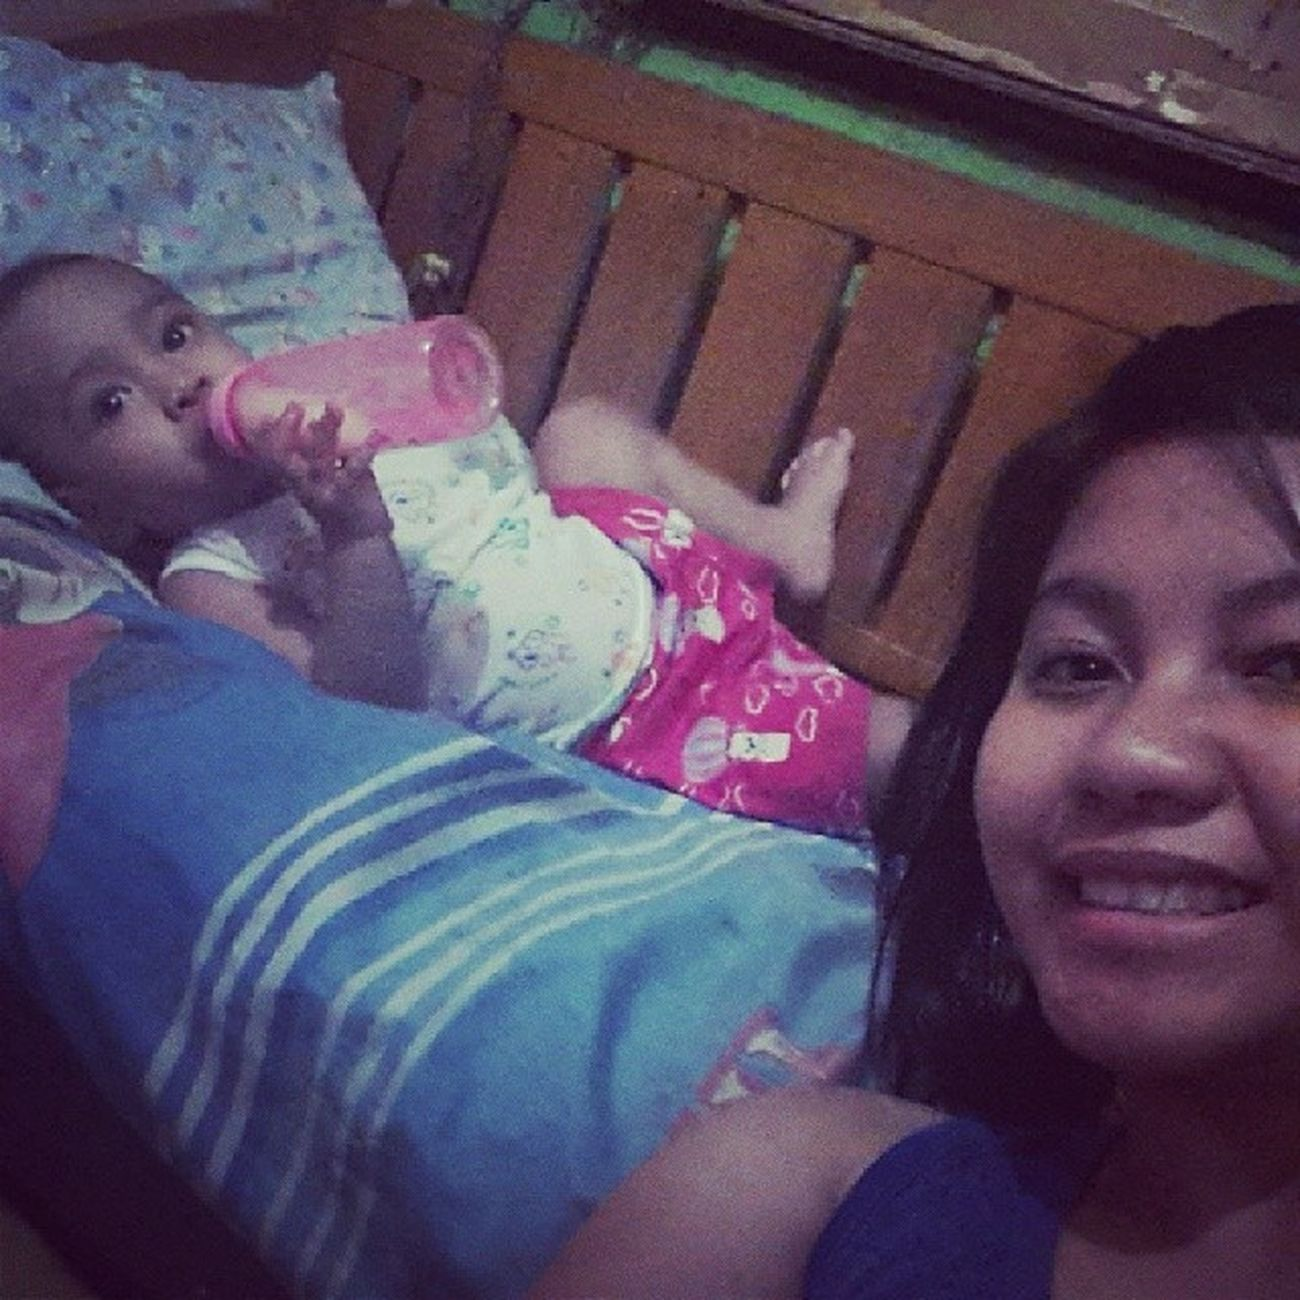 Restday with bunsO. *^▁^* Watchinghonesto Nytworld Mothermode IGDaily